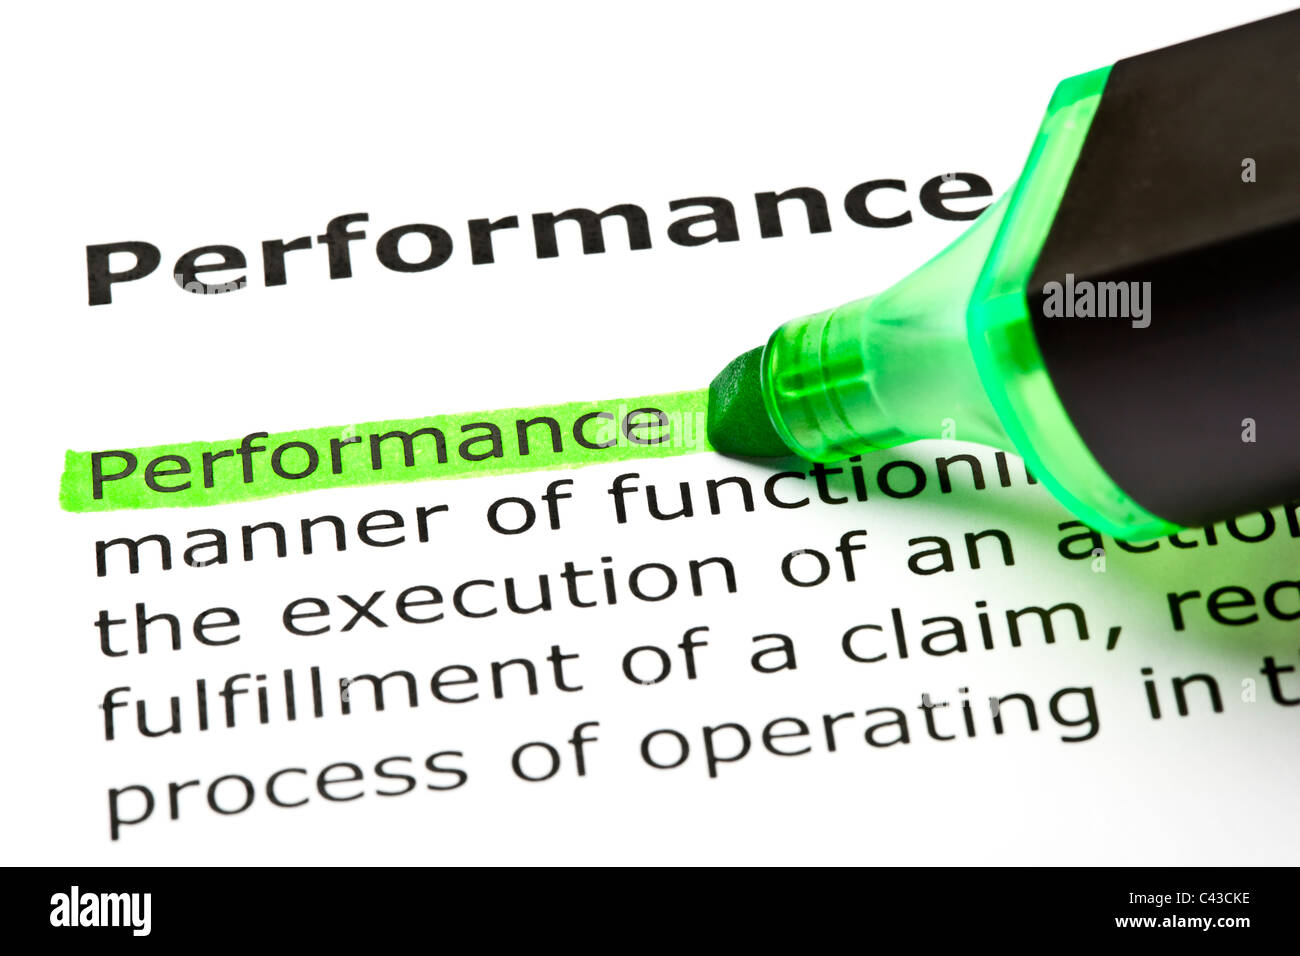 The word 'Performance' highlighted in green with felt tip pen - Stock Image